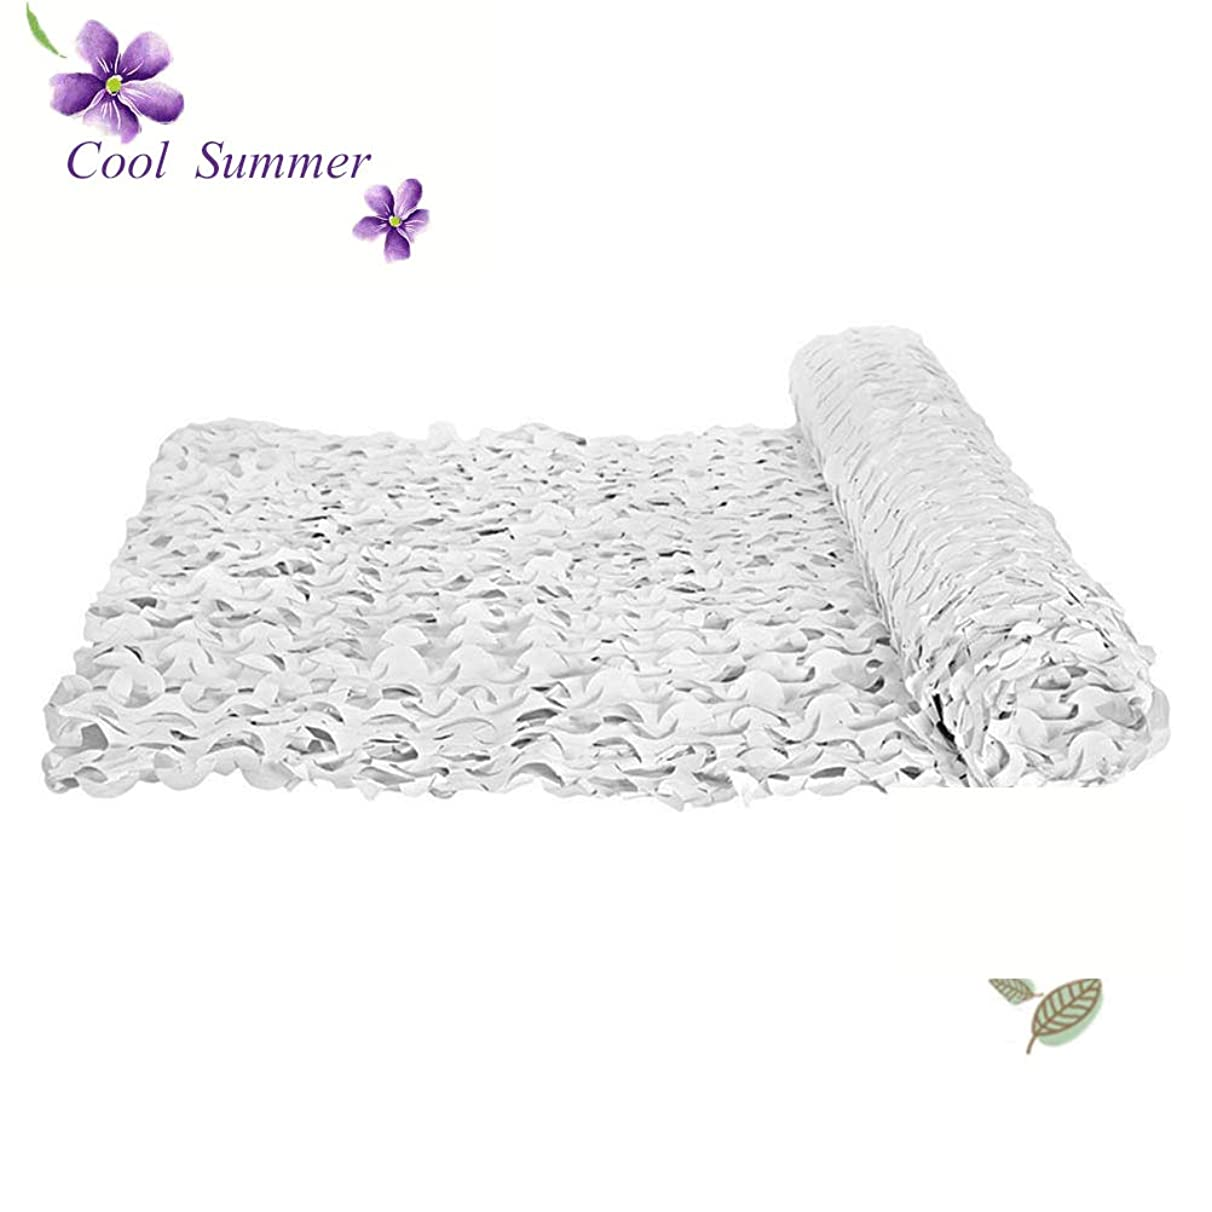 Koovin Camouflage Neting White-Camo Net,Sun Awning Suitable for Outdoor Camping& Hiking,Garden,Pool,skylights,Decoration,Customizable